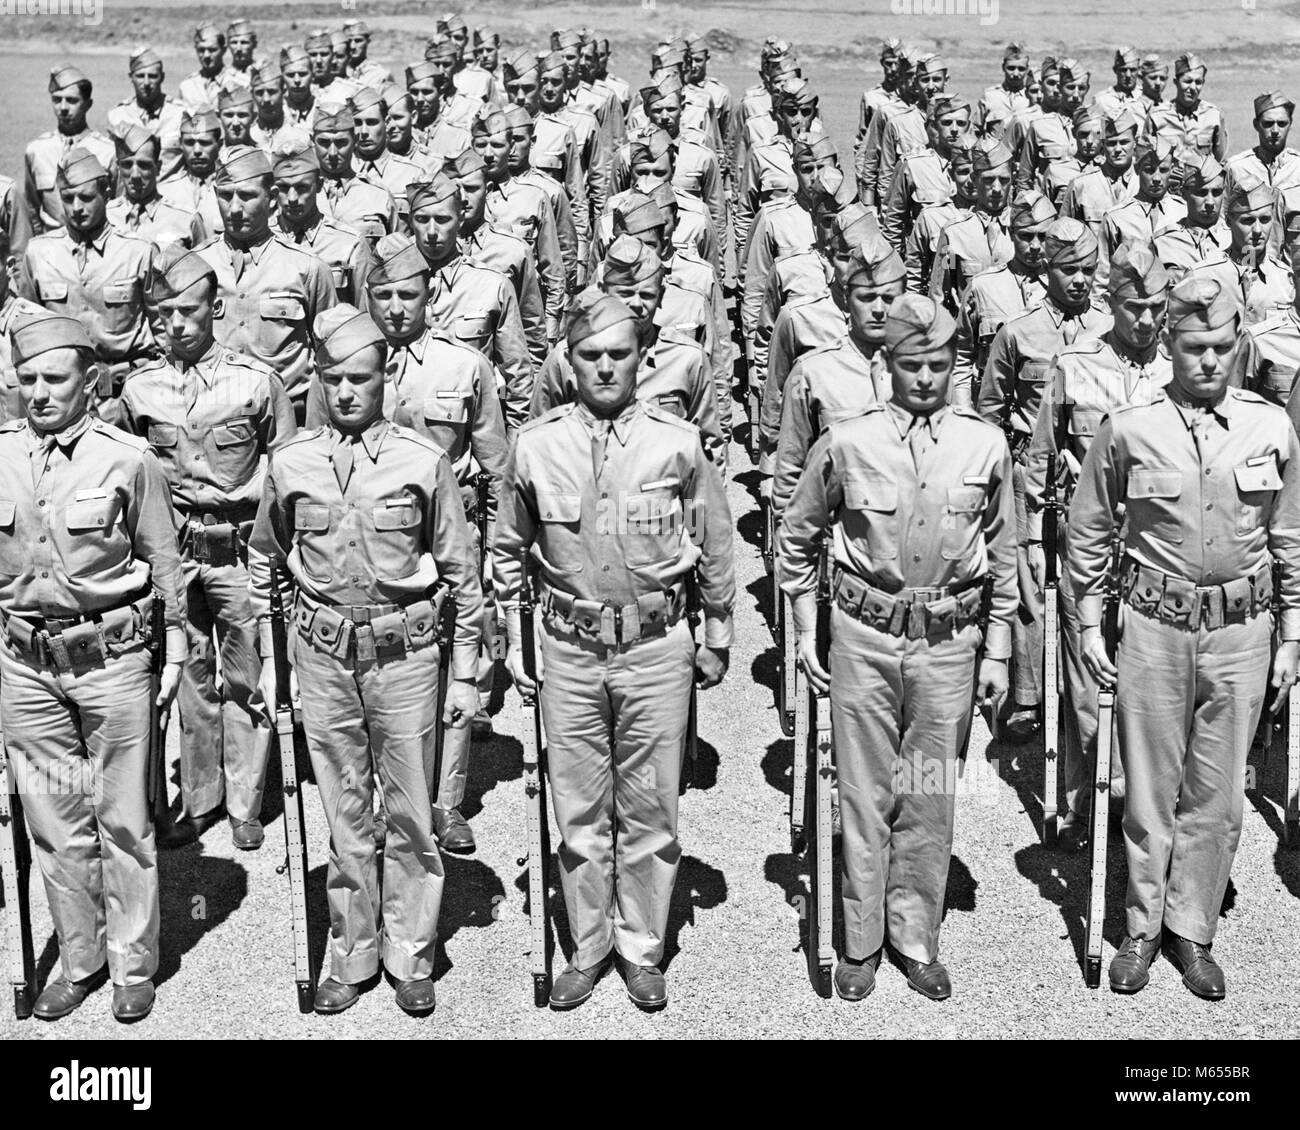 1940s ROWS OF AMERICAN WORLD WAR II SOLDIERS STANDING AT ATTENTION WITH RIFLES LOOKING AT CAMERA - a2433 HAR001 - Stock Image